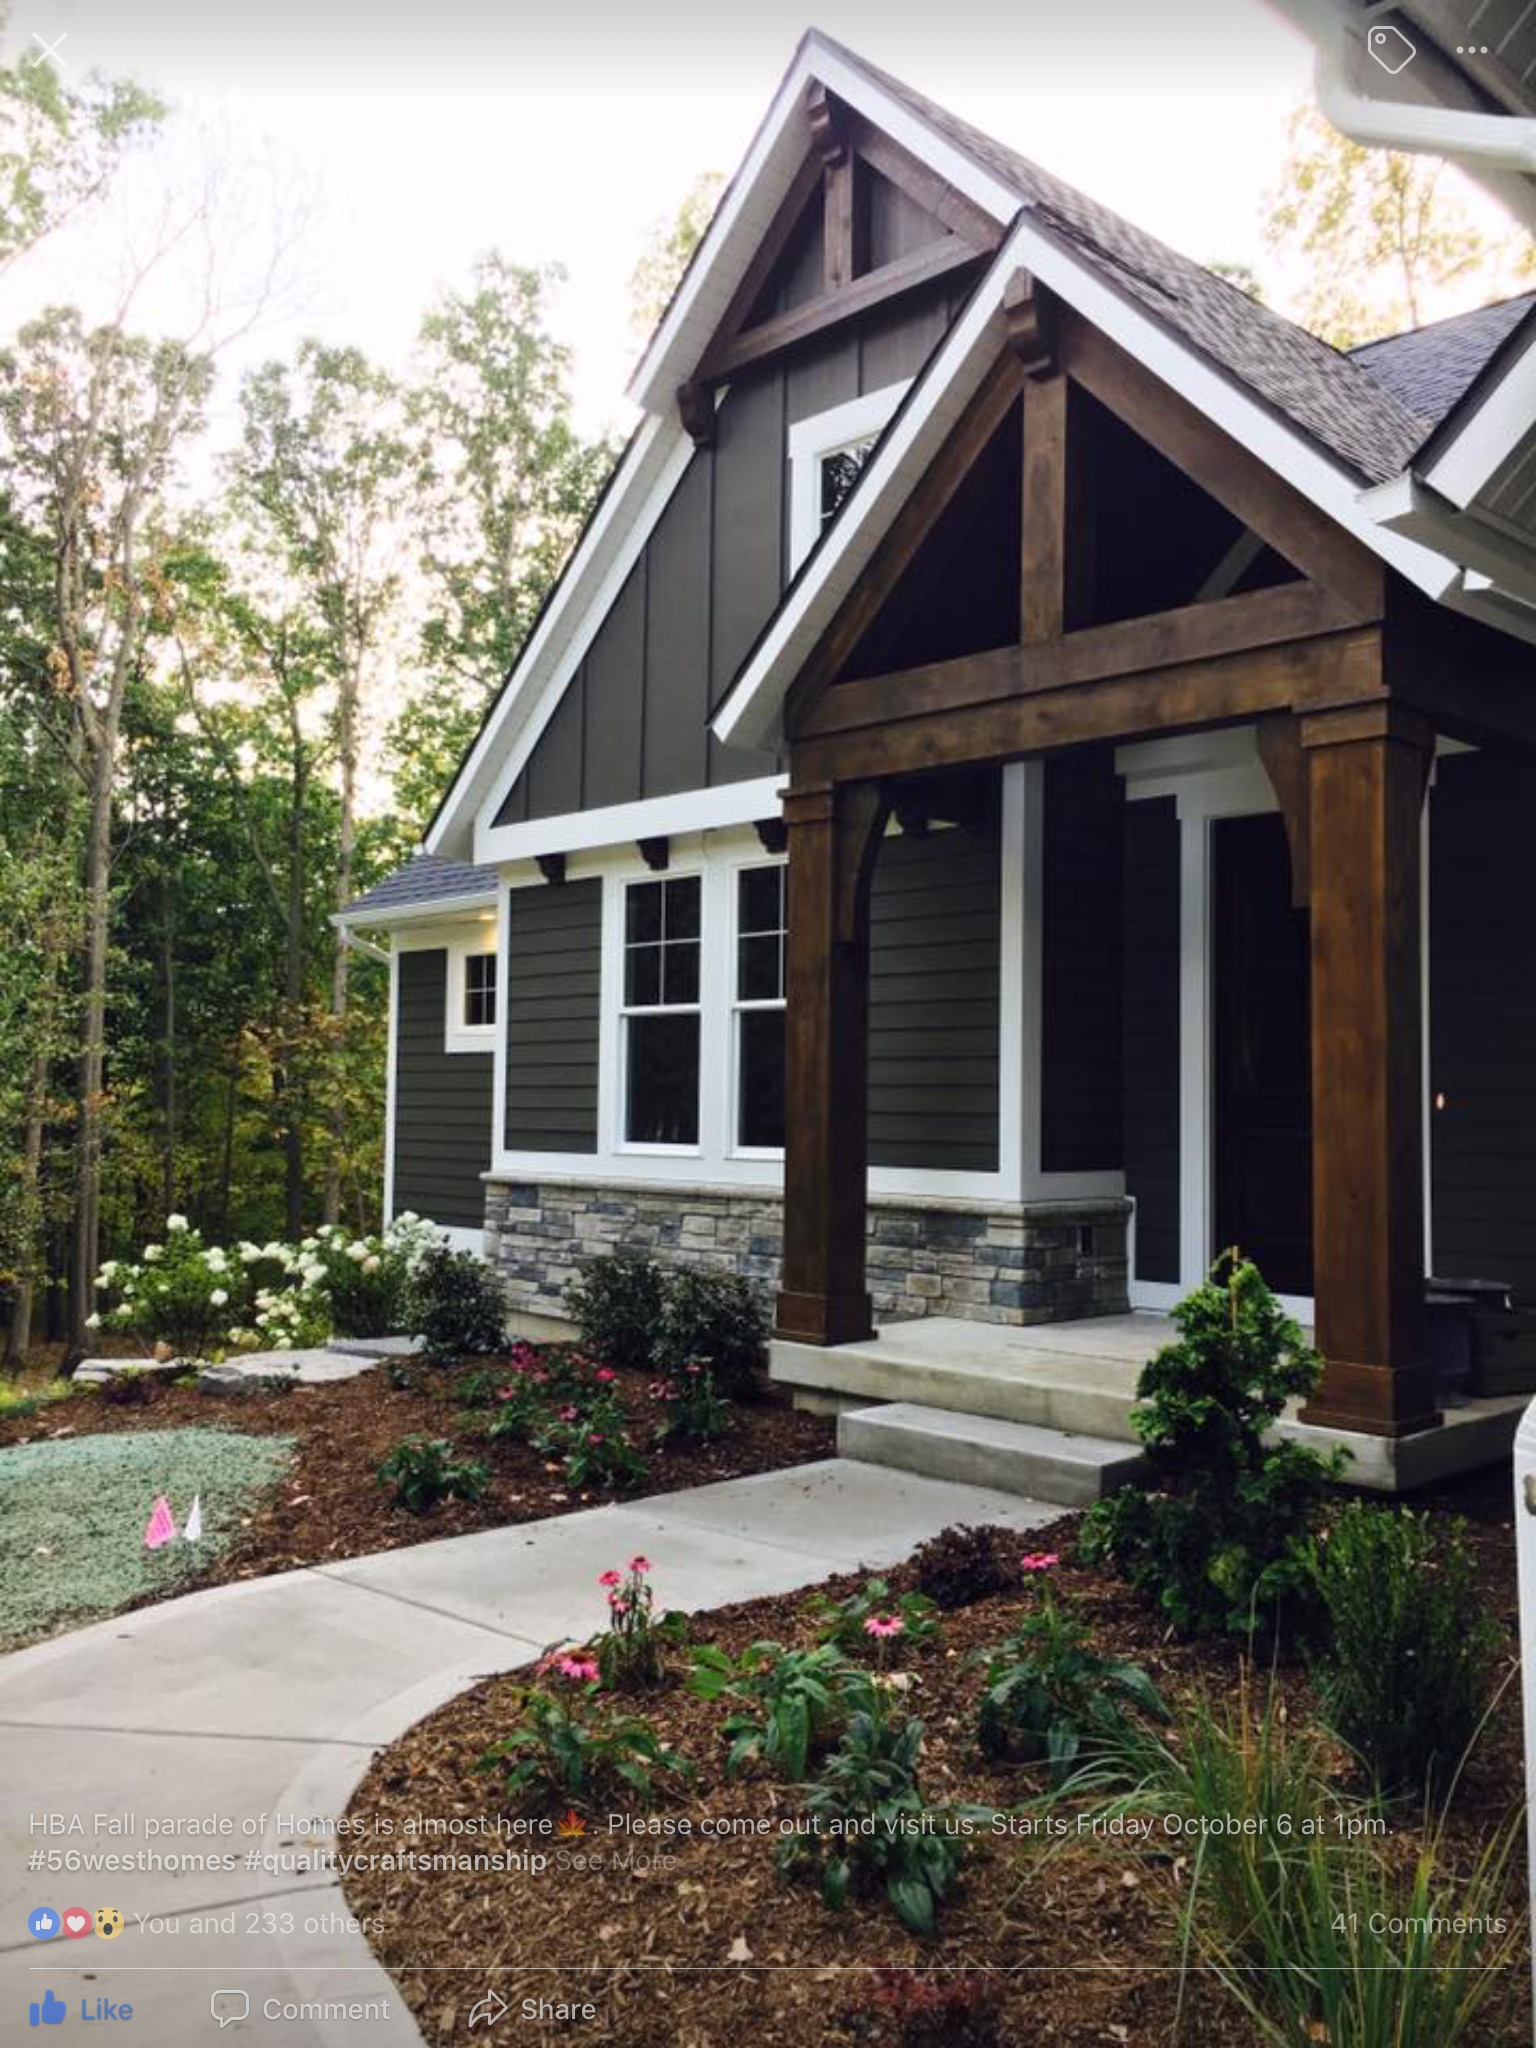 56 West - Love the house color, siding, exterior, wood detail and the color of the wood #ExteriorHouseRenovation #greyexteriorhousecolors